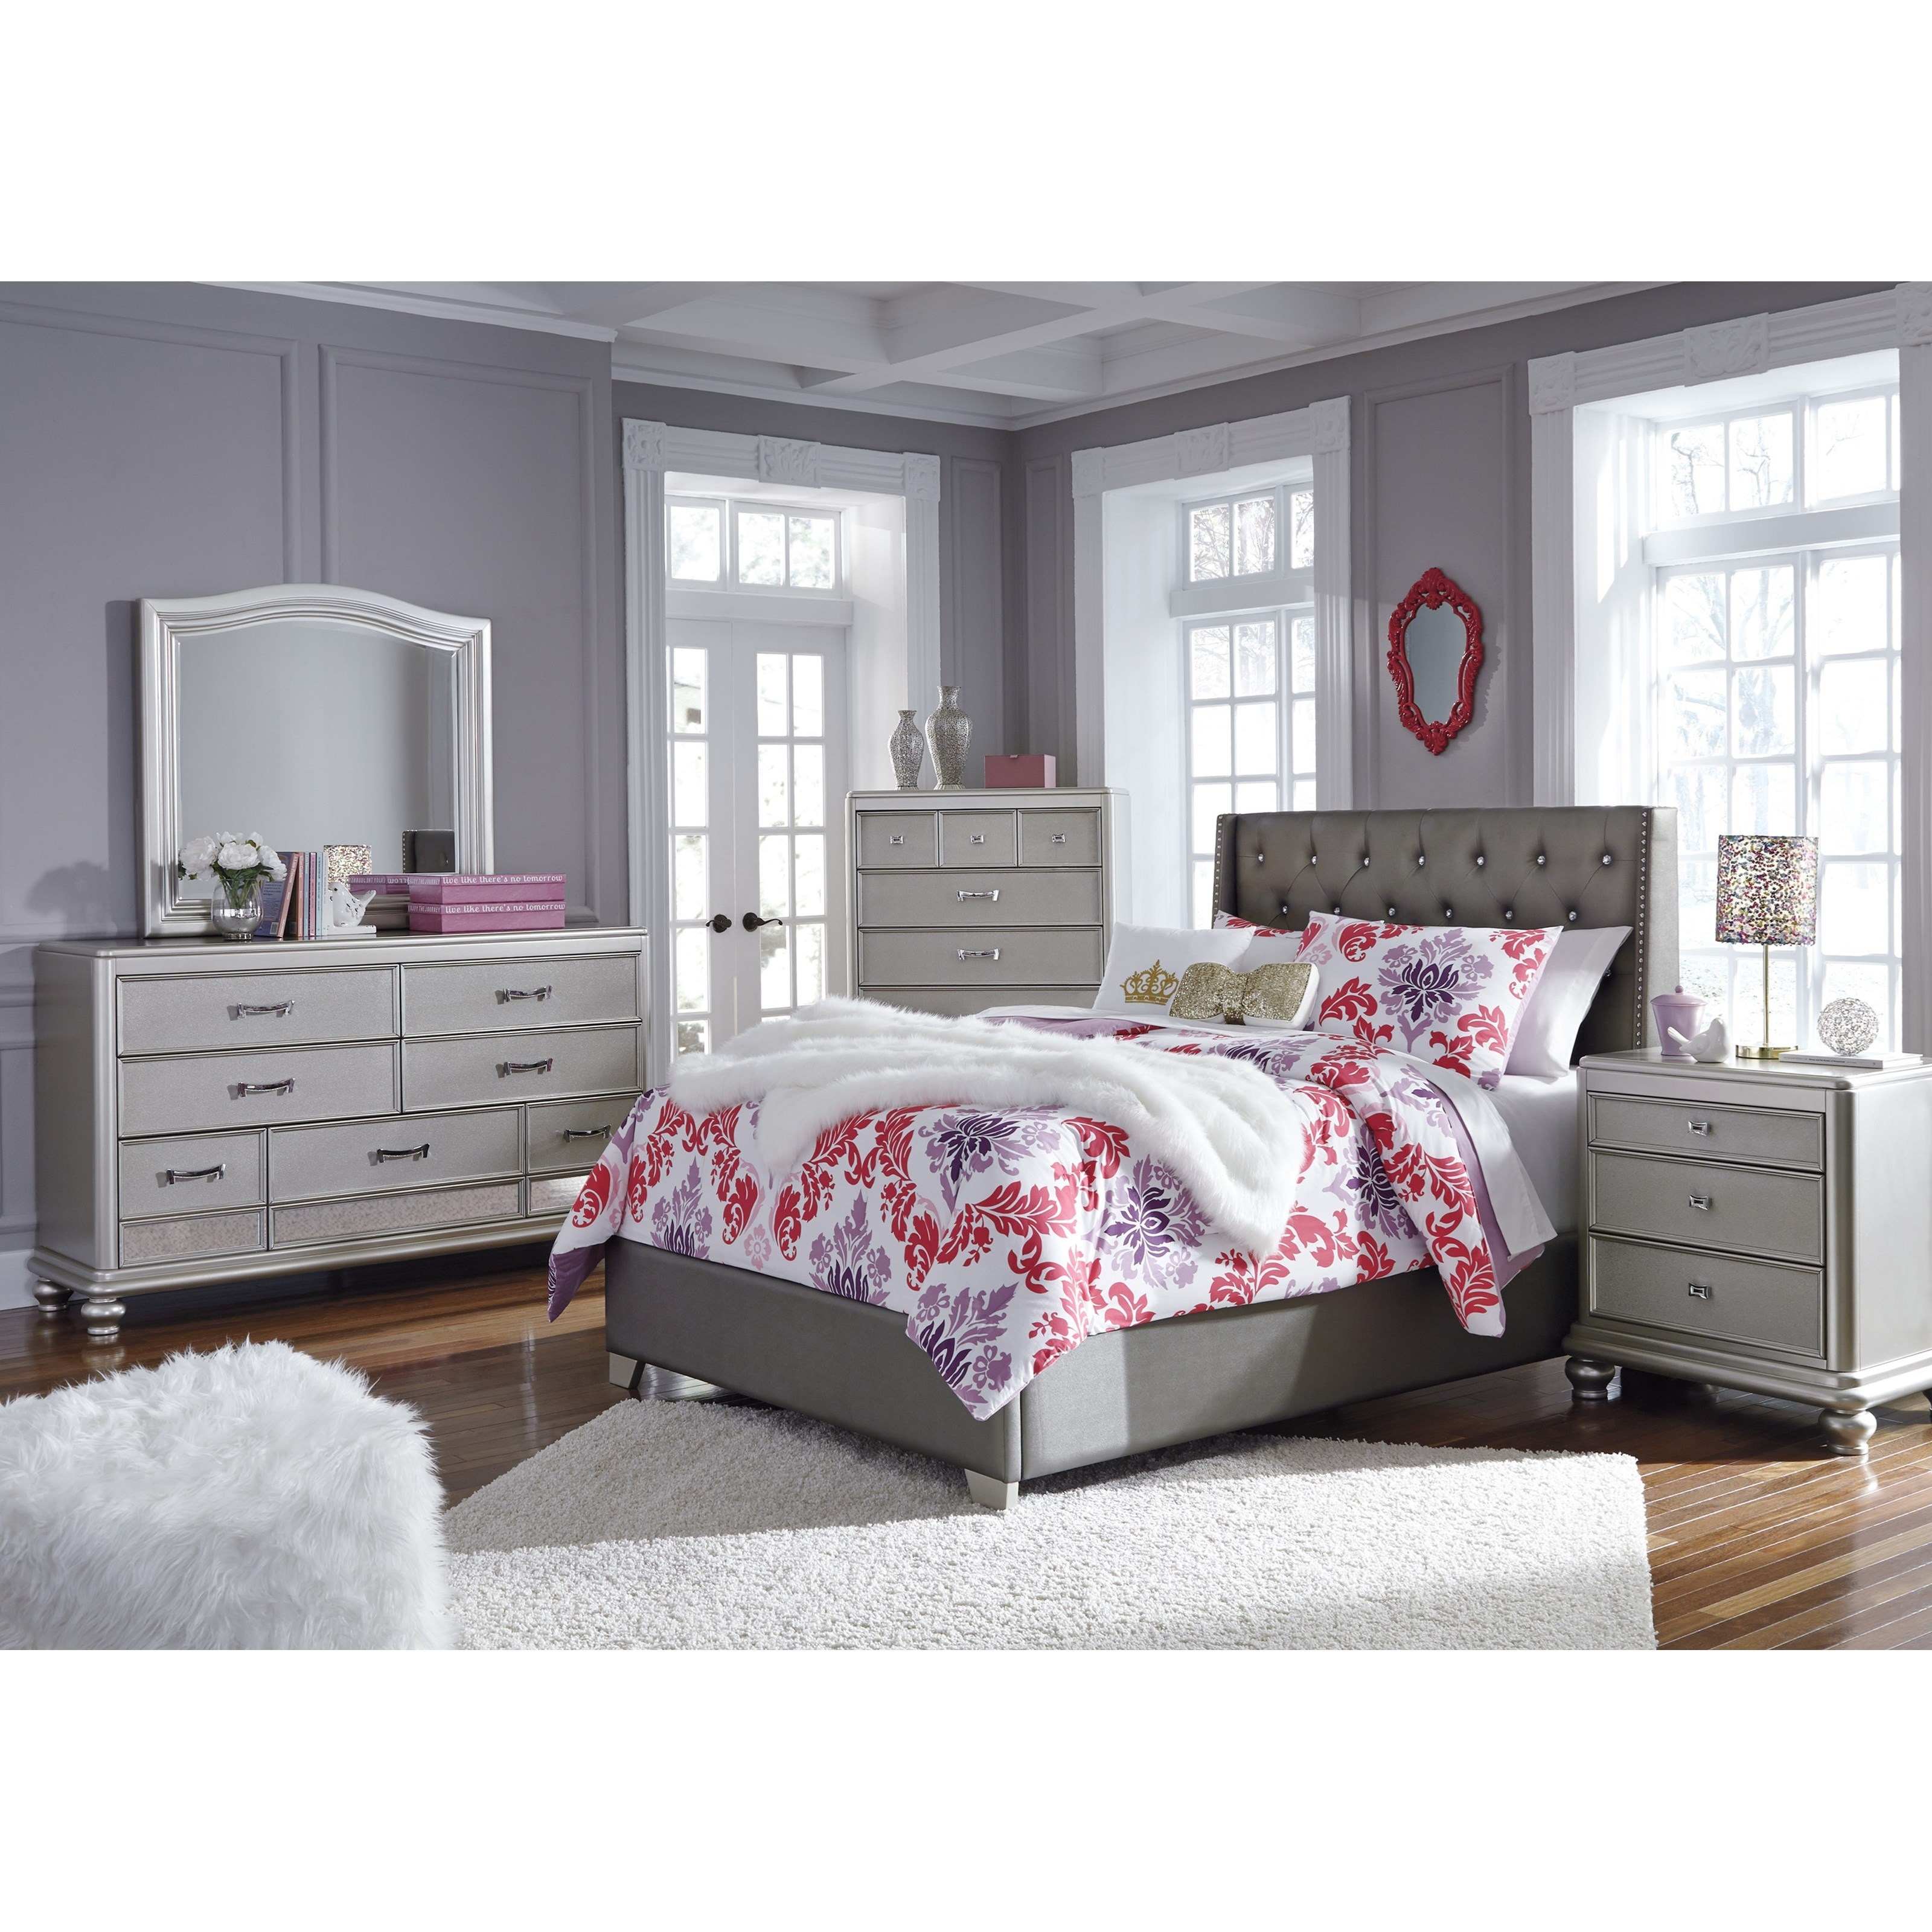 Coralayne Full Bedroom Group by Signature Design by Ashley at Northeast Factory Direct